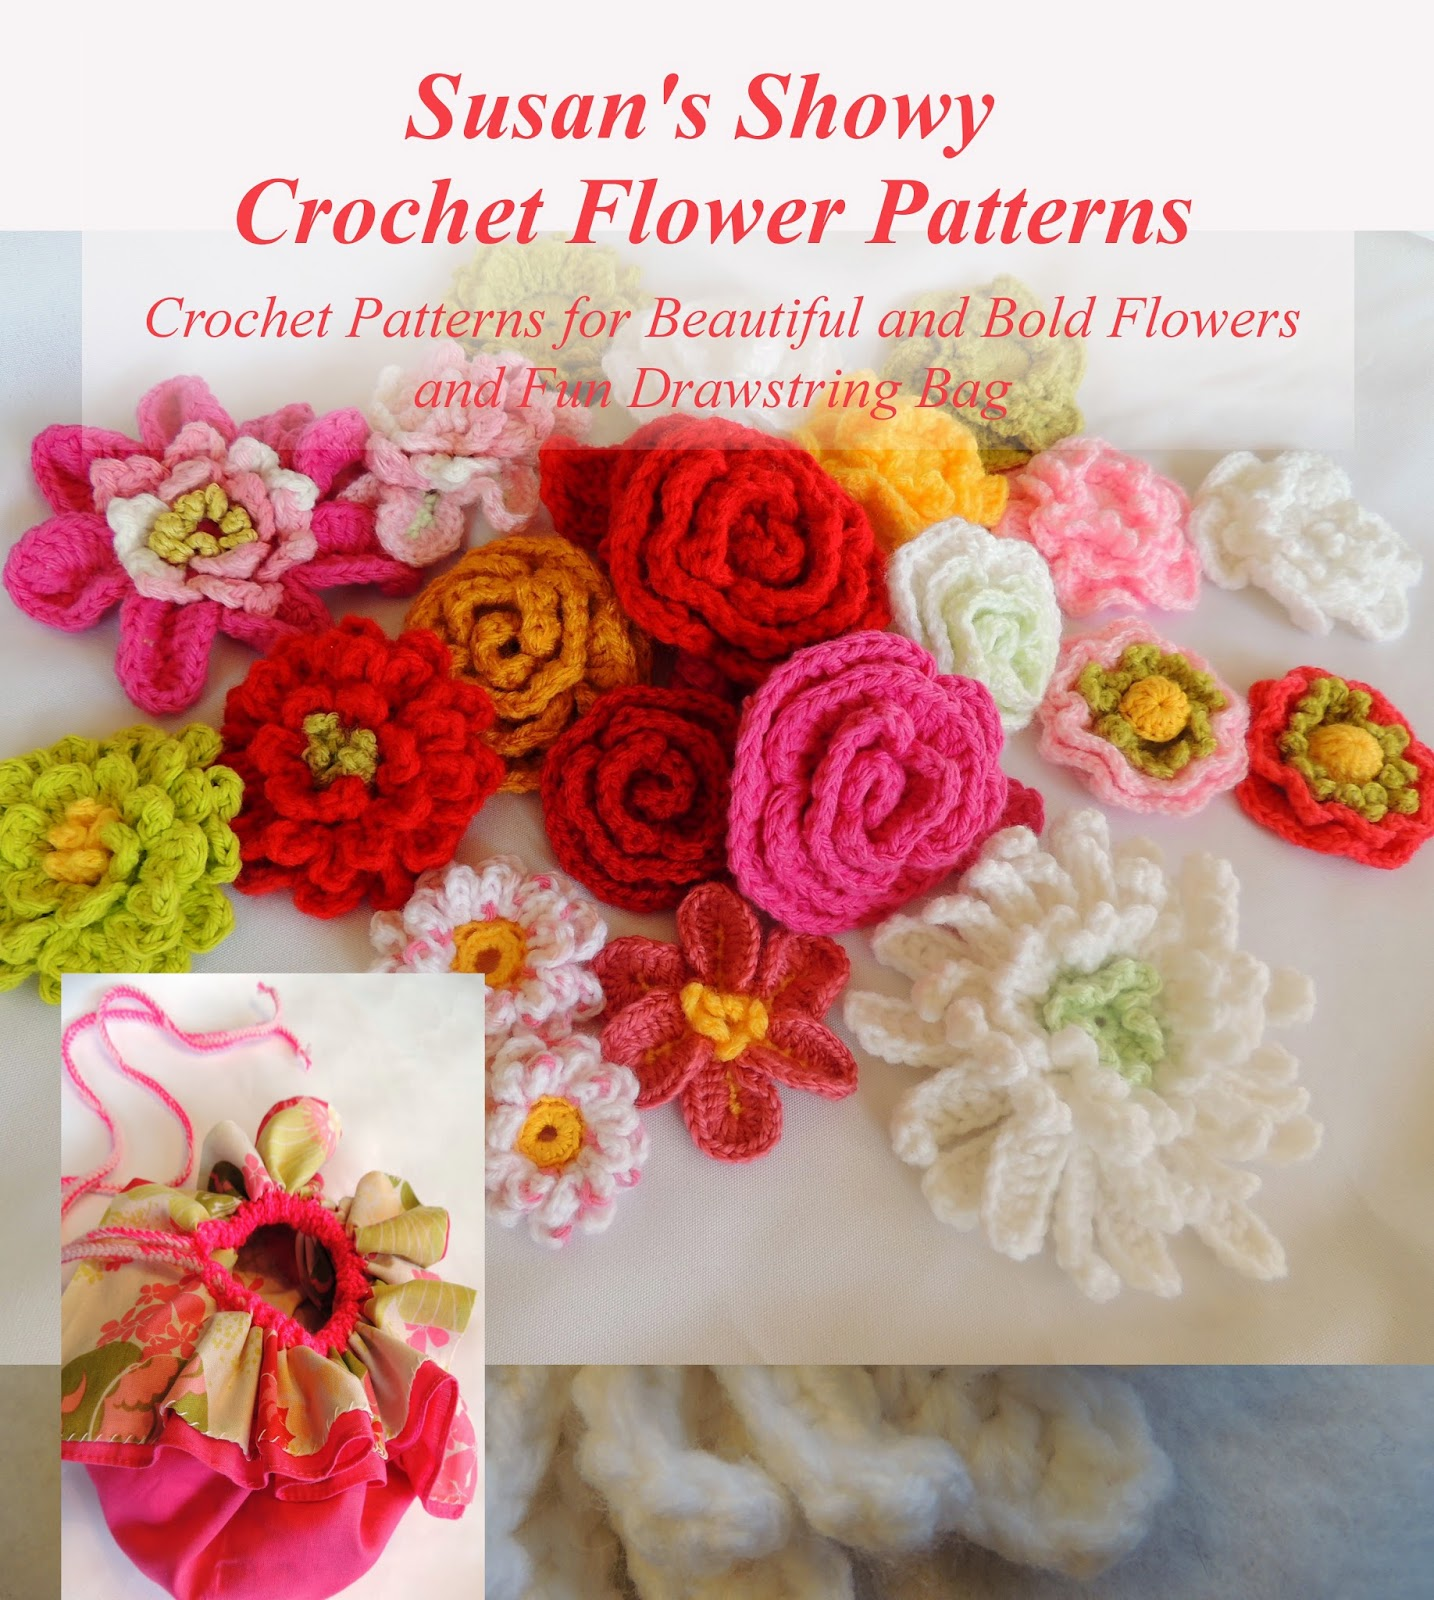 https://www.etsy.com/listing/227609198/flower-crochet-patterns-susans-14-new?ref=shop_home_active_1